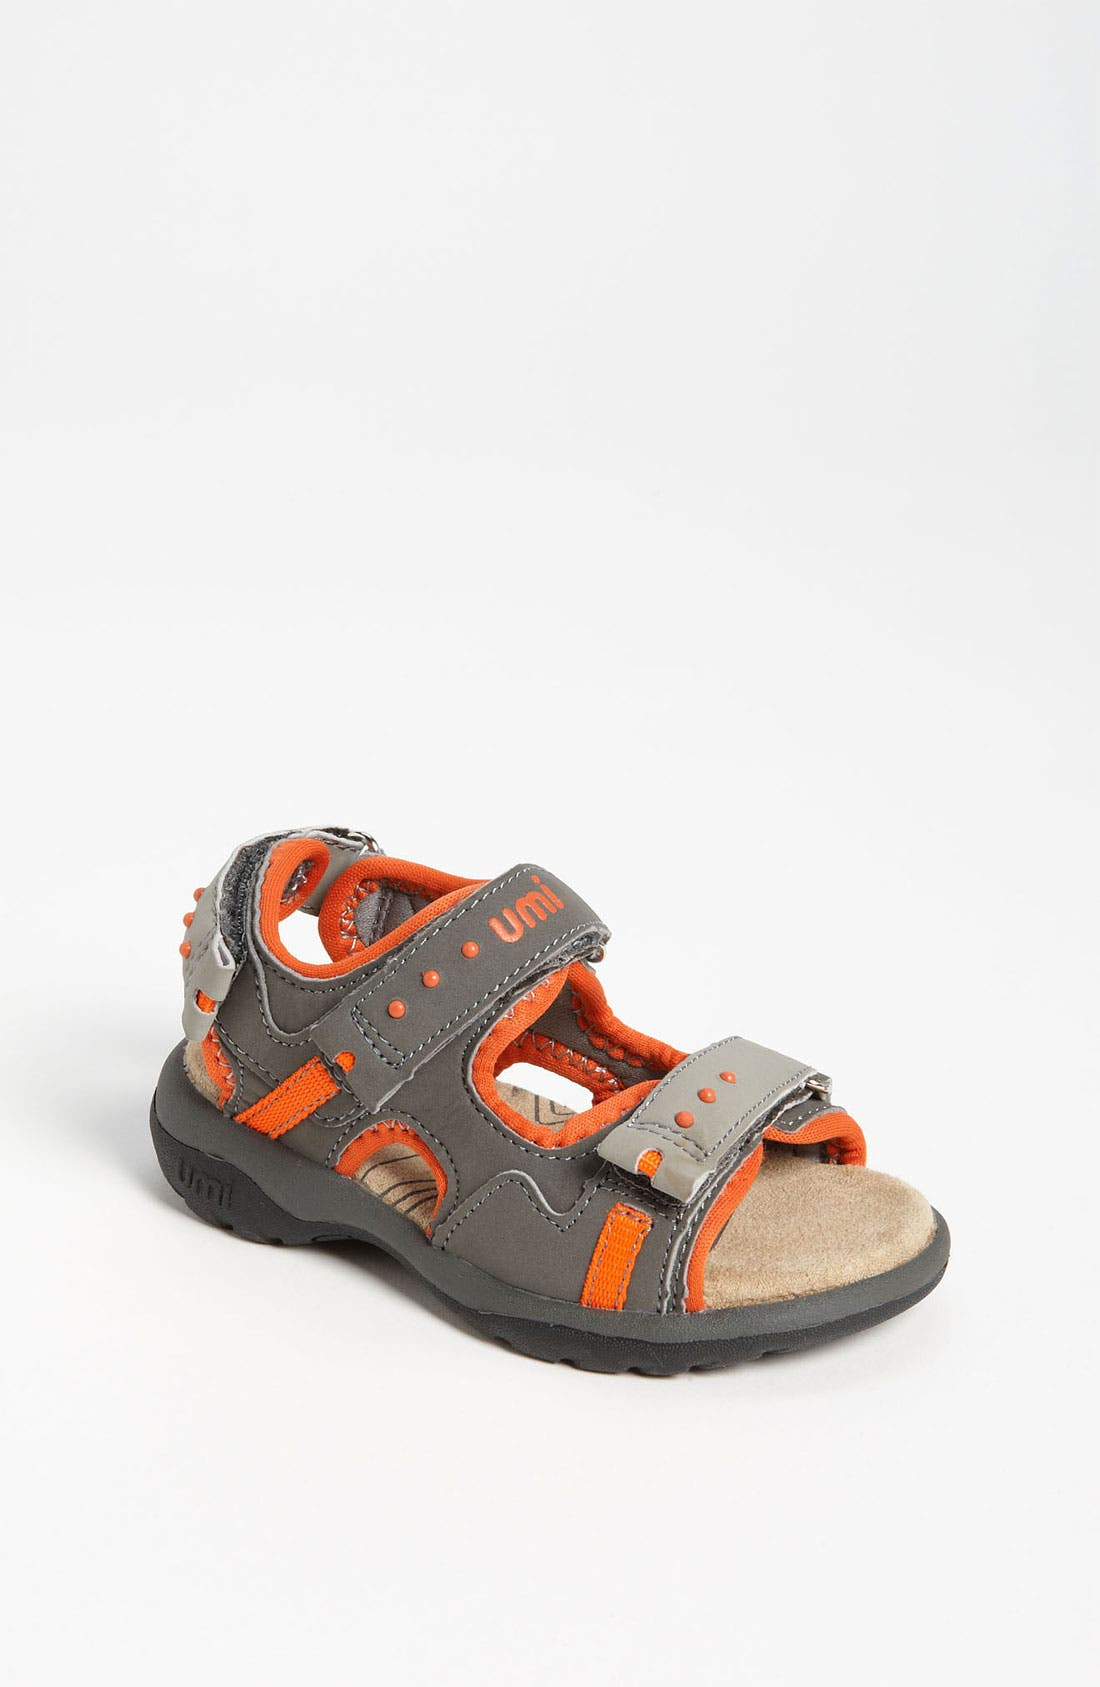 Main Image - Umi 'Laren' Sandal (Walker, Toddler, Little Kid & Big Kid)